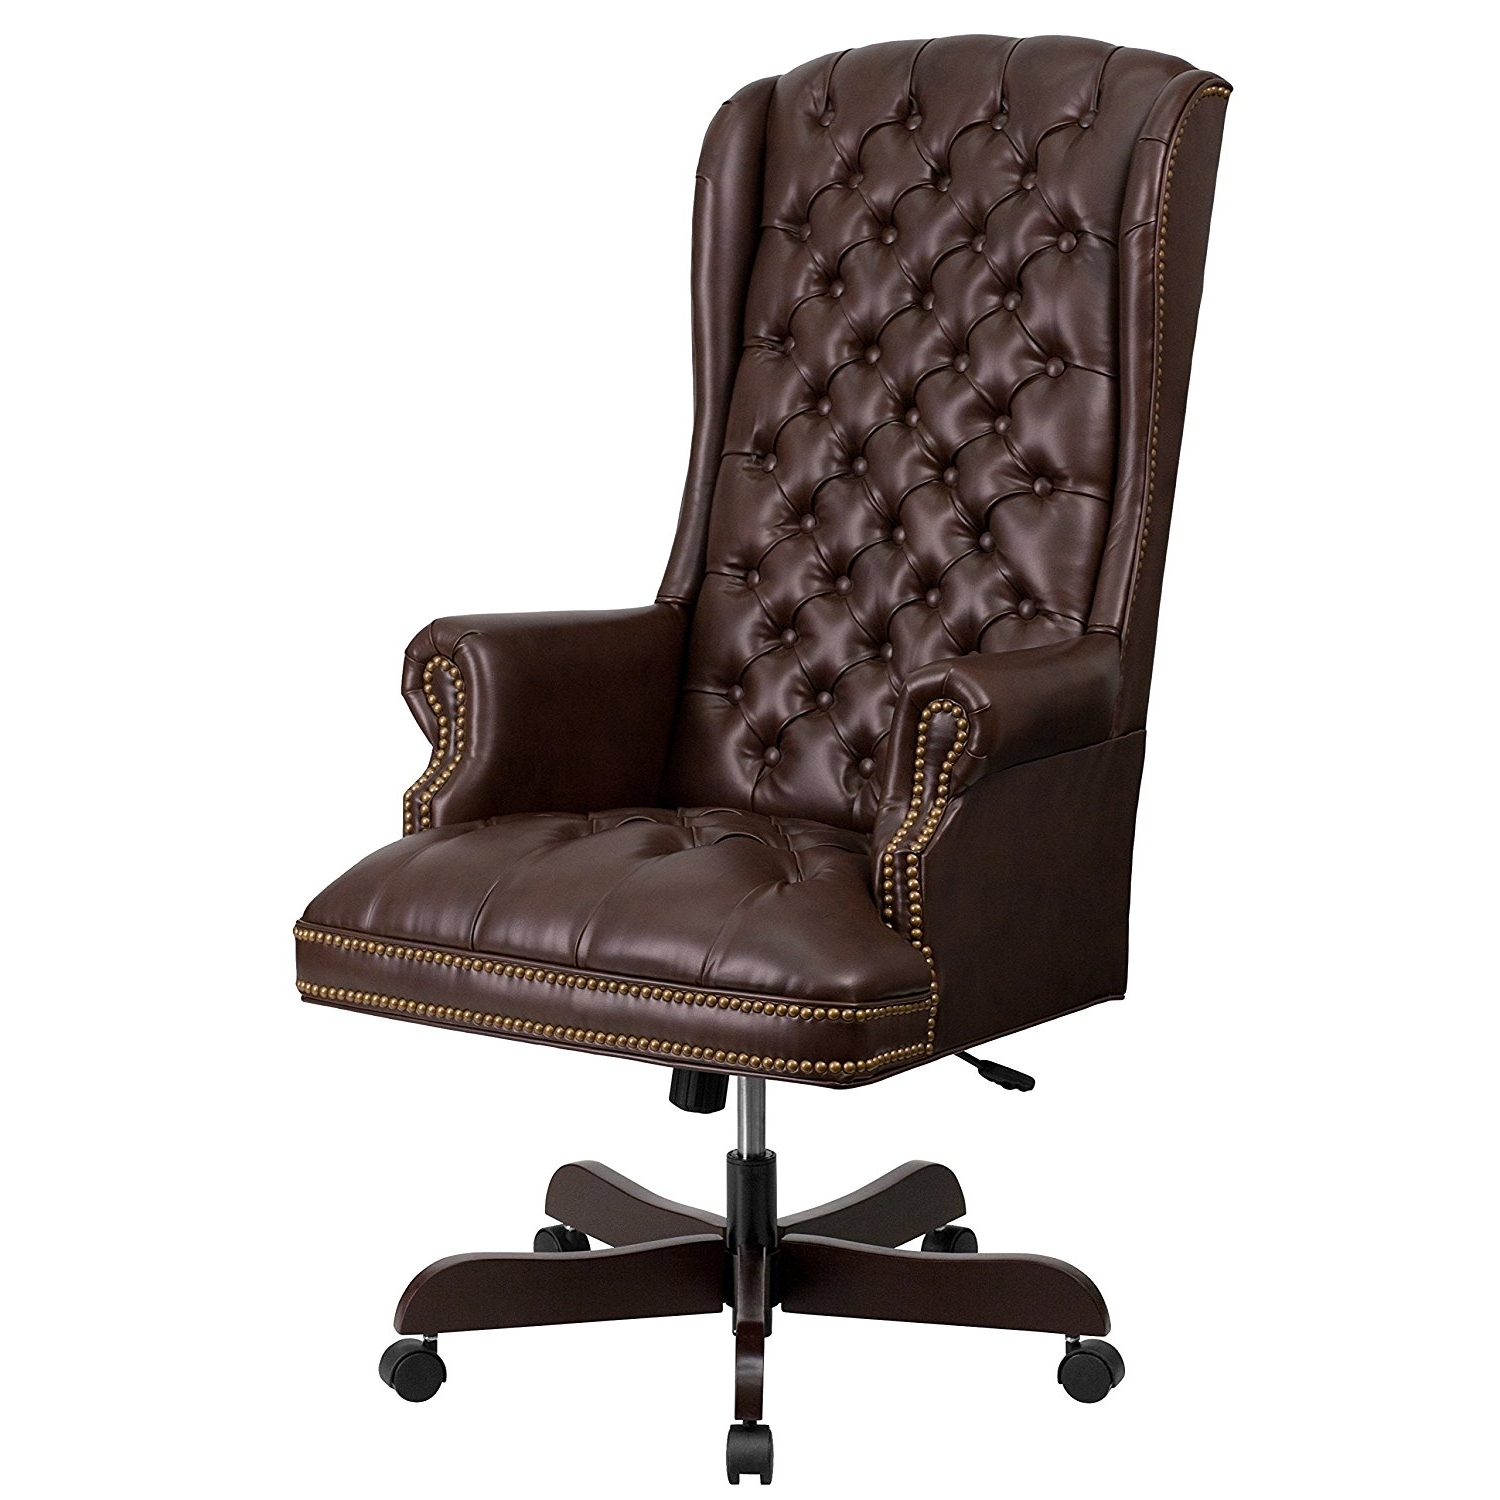 Chair : High Back Executive Leather Office Chair Verona Brown With Most Popular Verona Executive Leather Office Chairs (View 6 of 20)